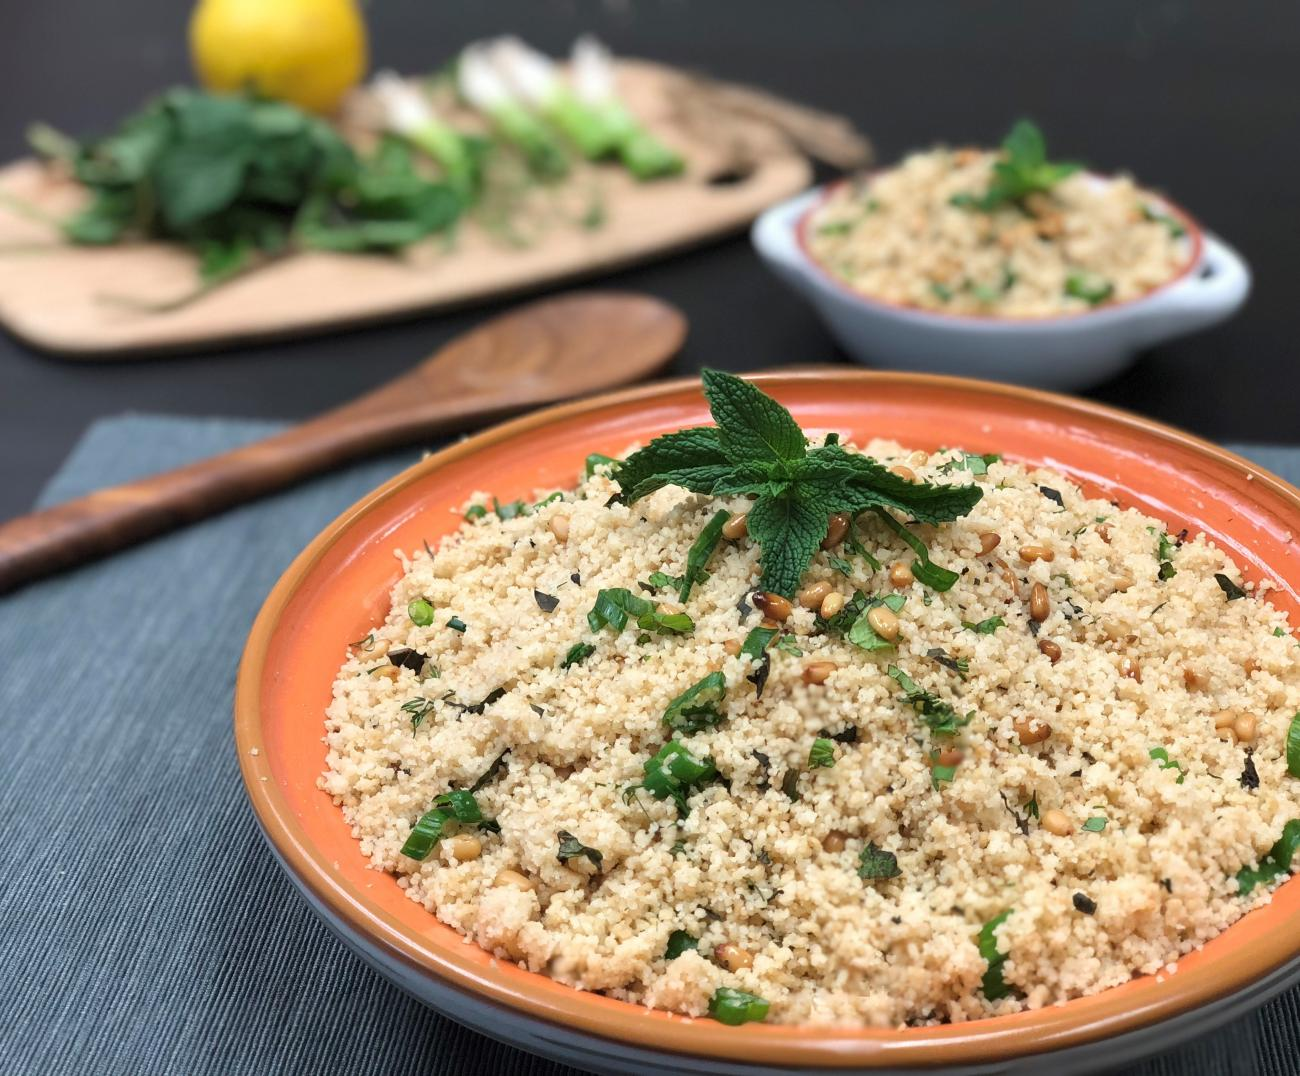 Recipe for Minted Couscous